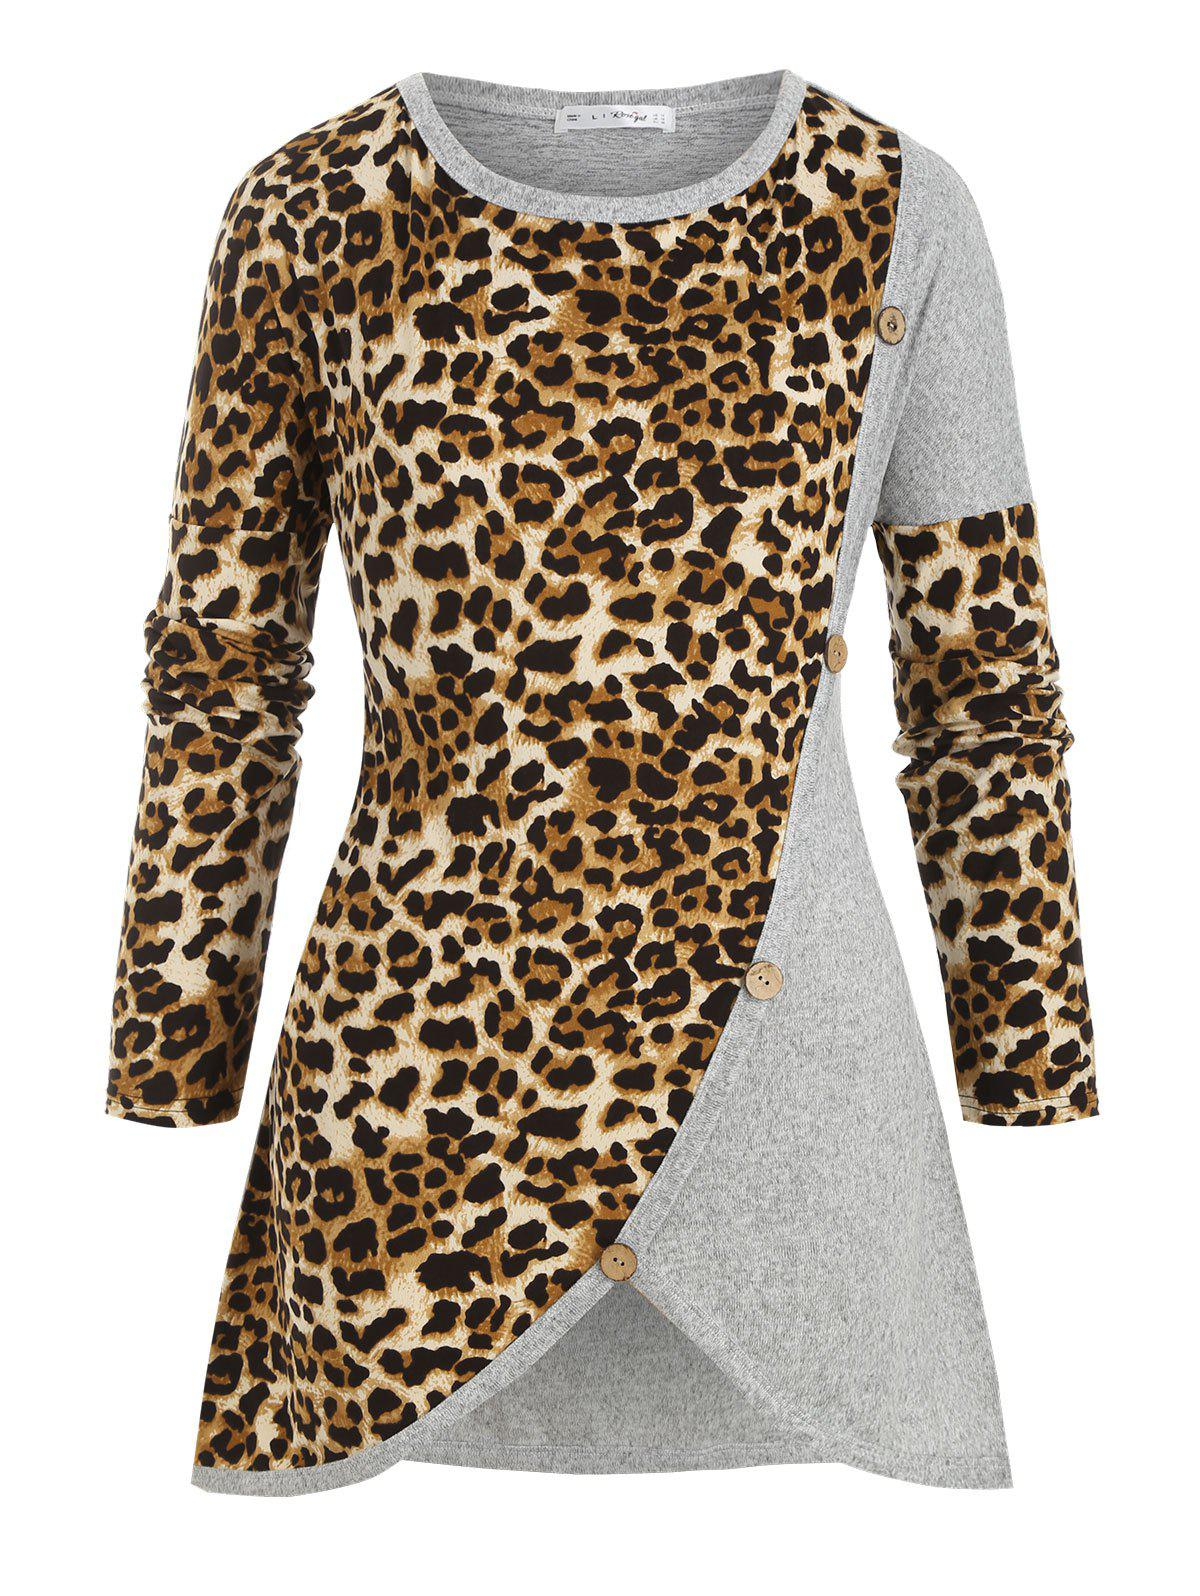 Leopard Panel Crew Neck Buttoned Plus Size Knitwear - GRAY L